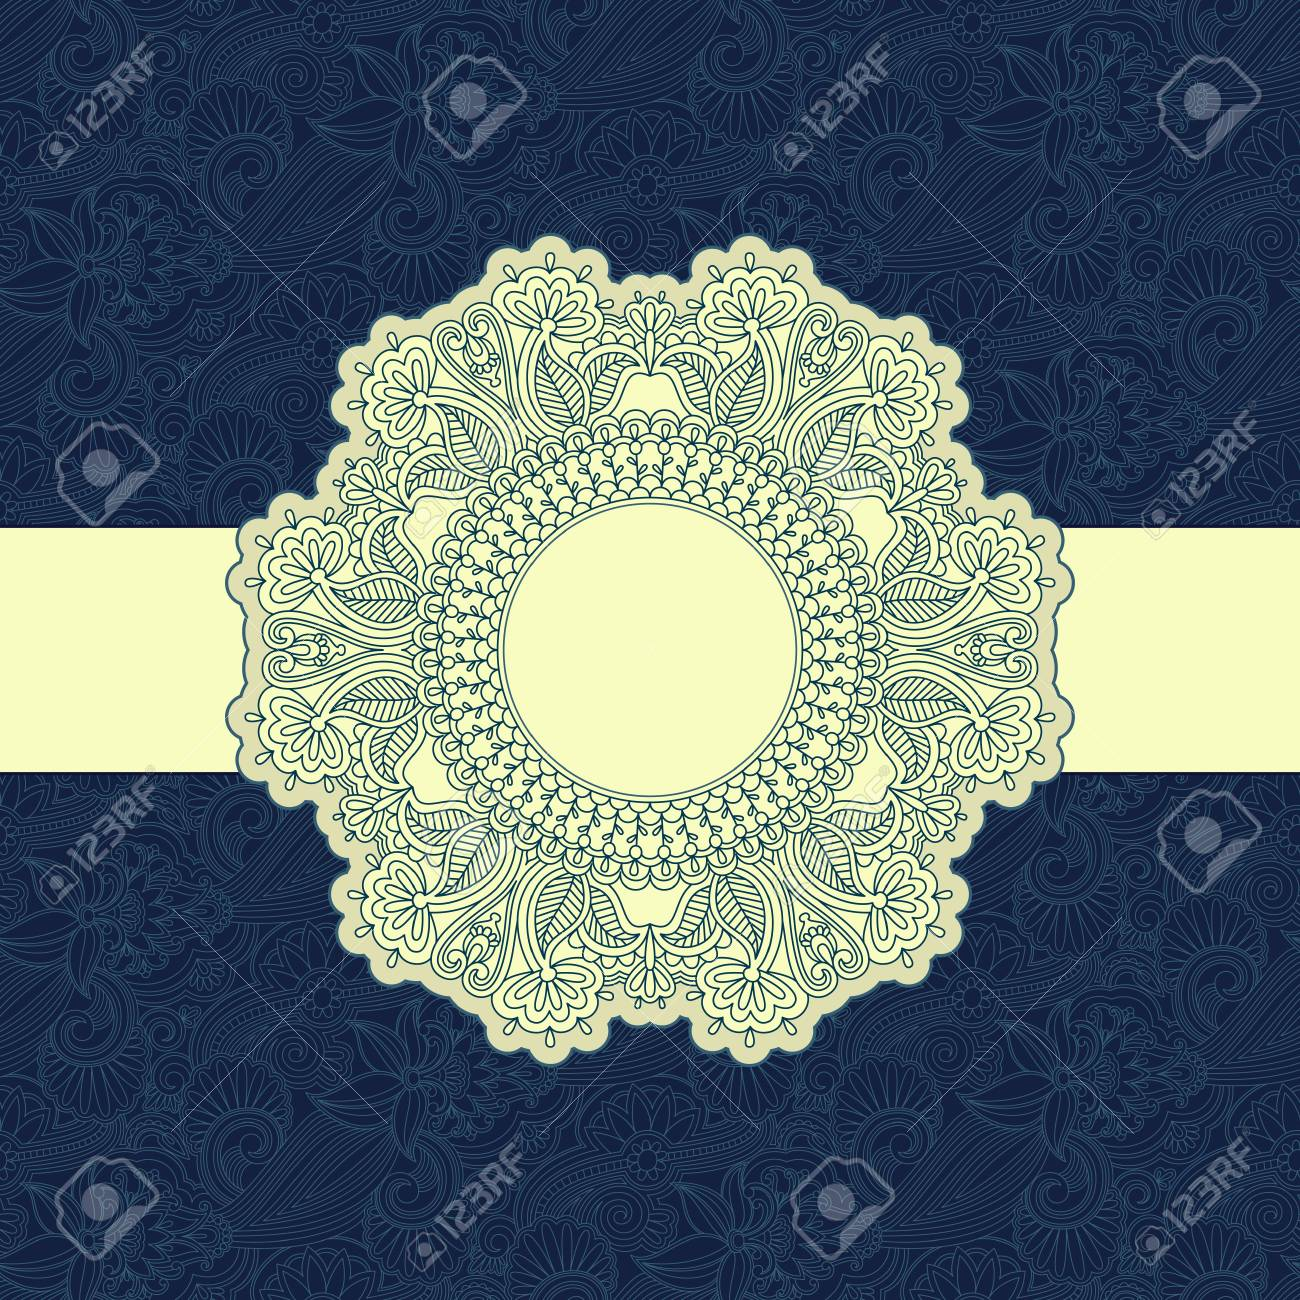 illustration with vintage pattern for greeting card. Stock Vector - 16721643